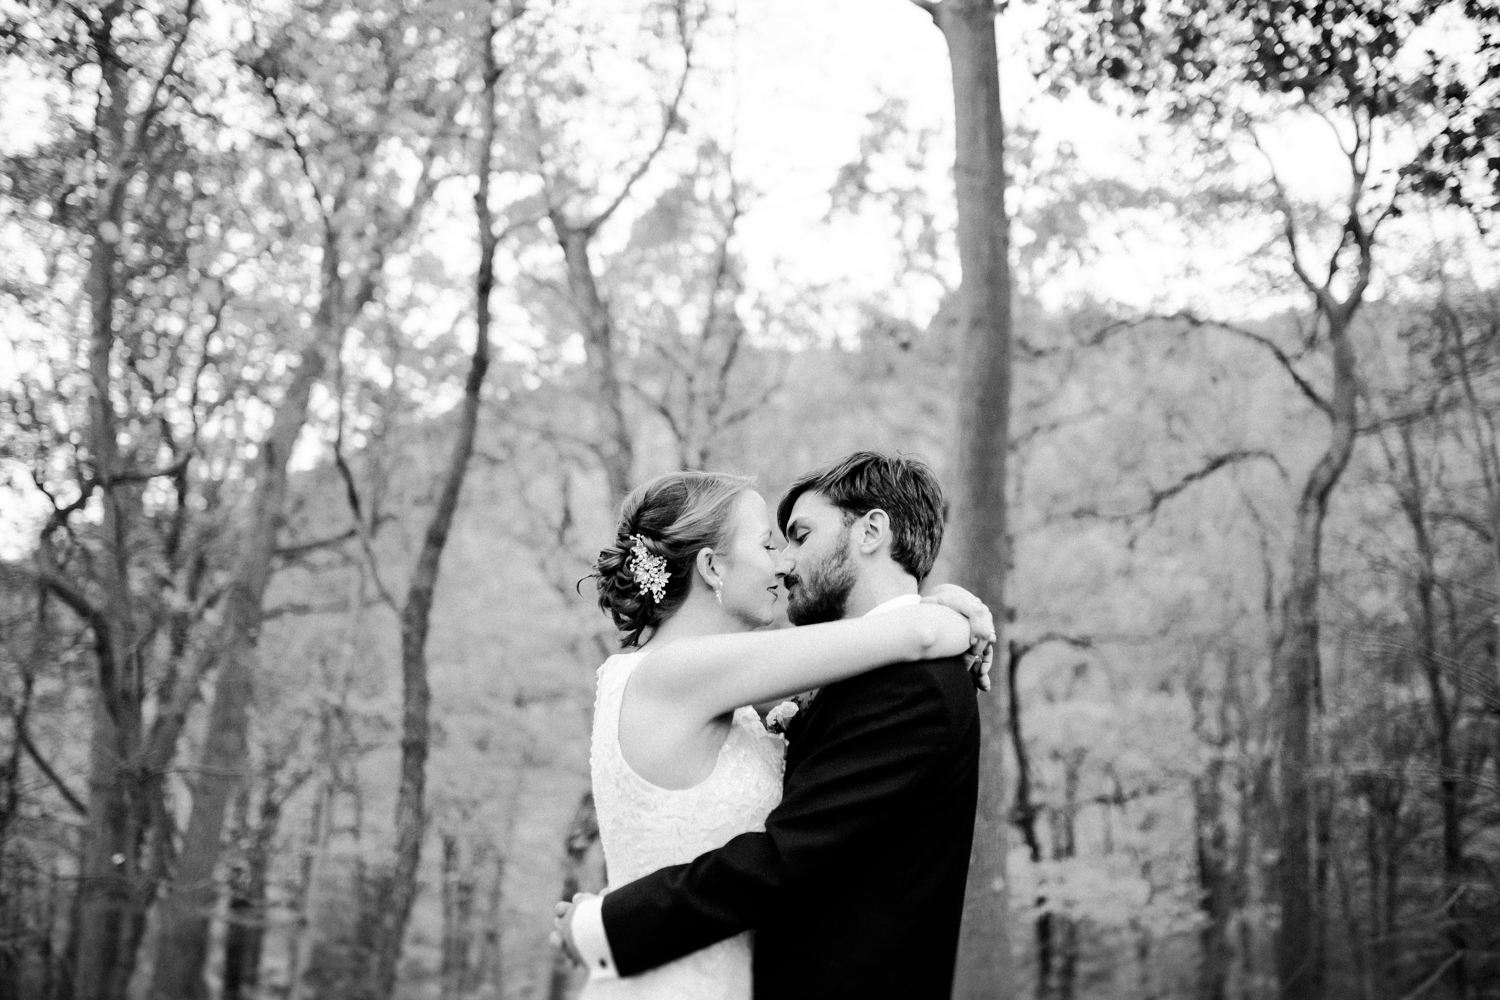 lissie_loomis_photo_nyc_brooklyn_wedding_engagement_photographer_photography-45.JPG